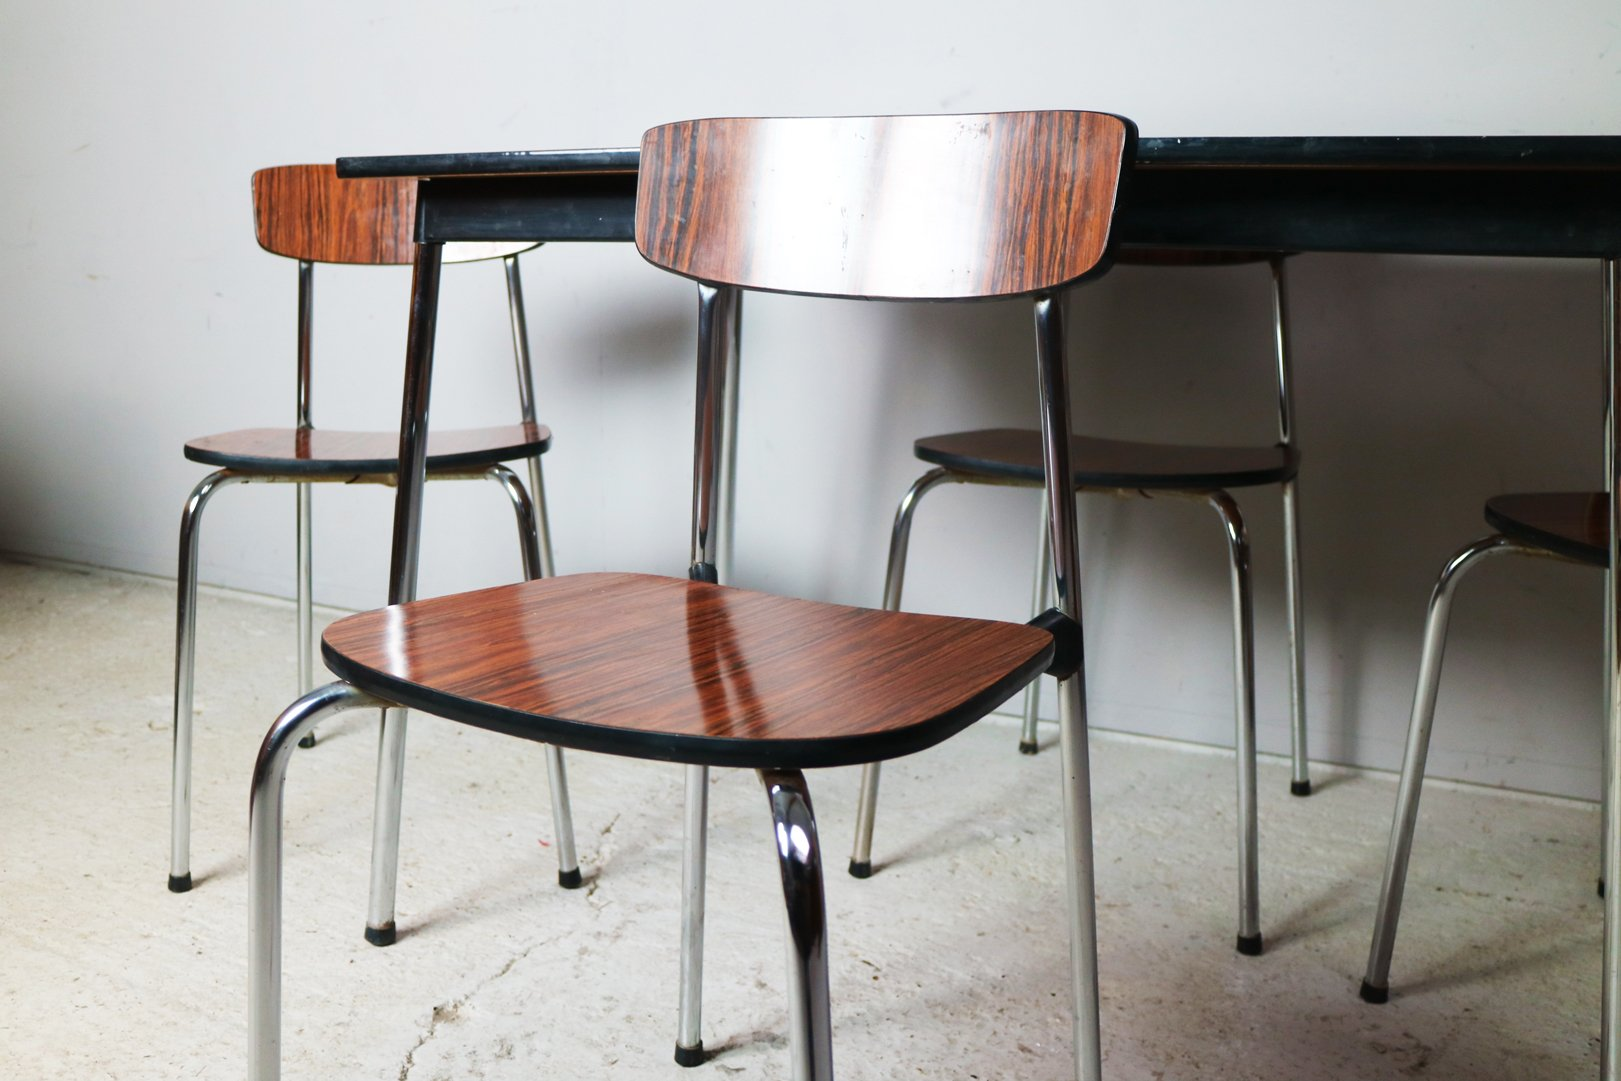 Vintage Formica Small Dining Table And 4 Chairs 1960s For